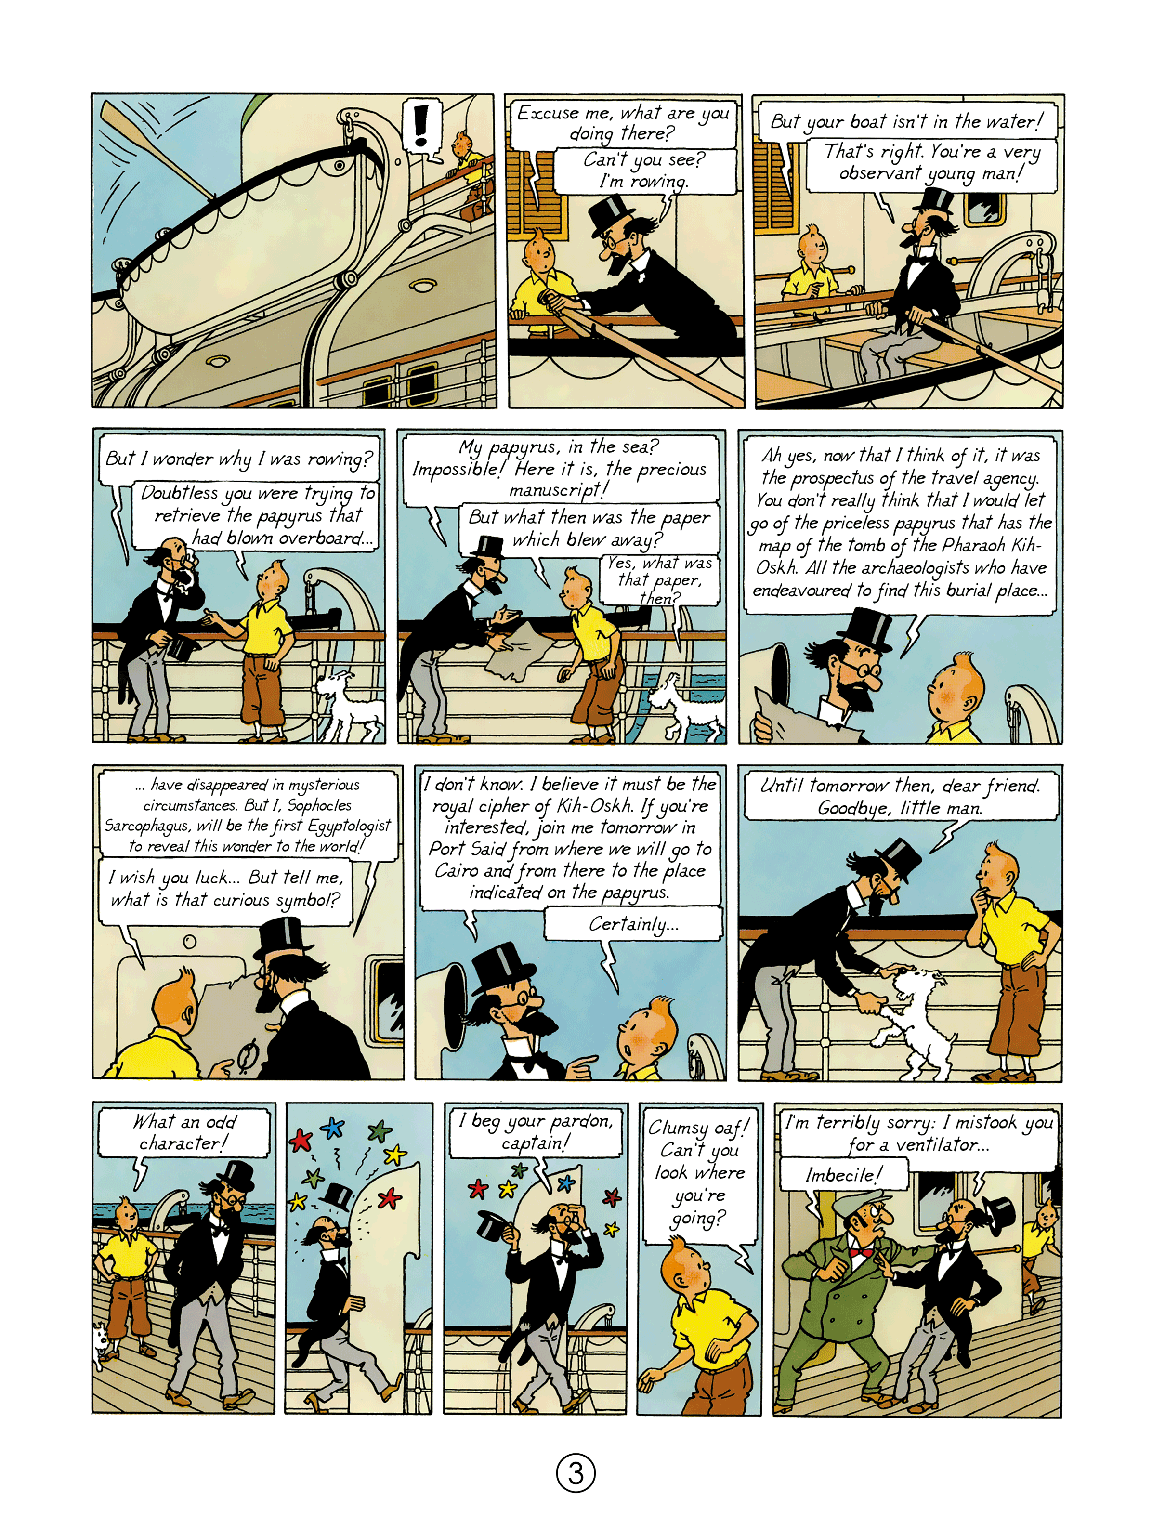 Cigars of the Pharaoh - Page 3